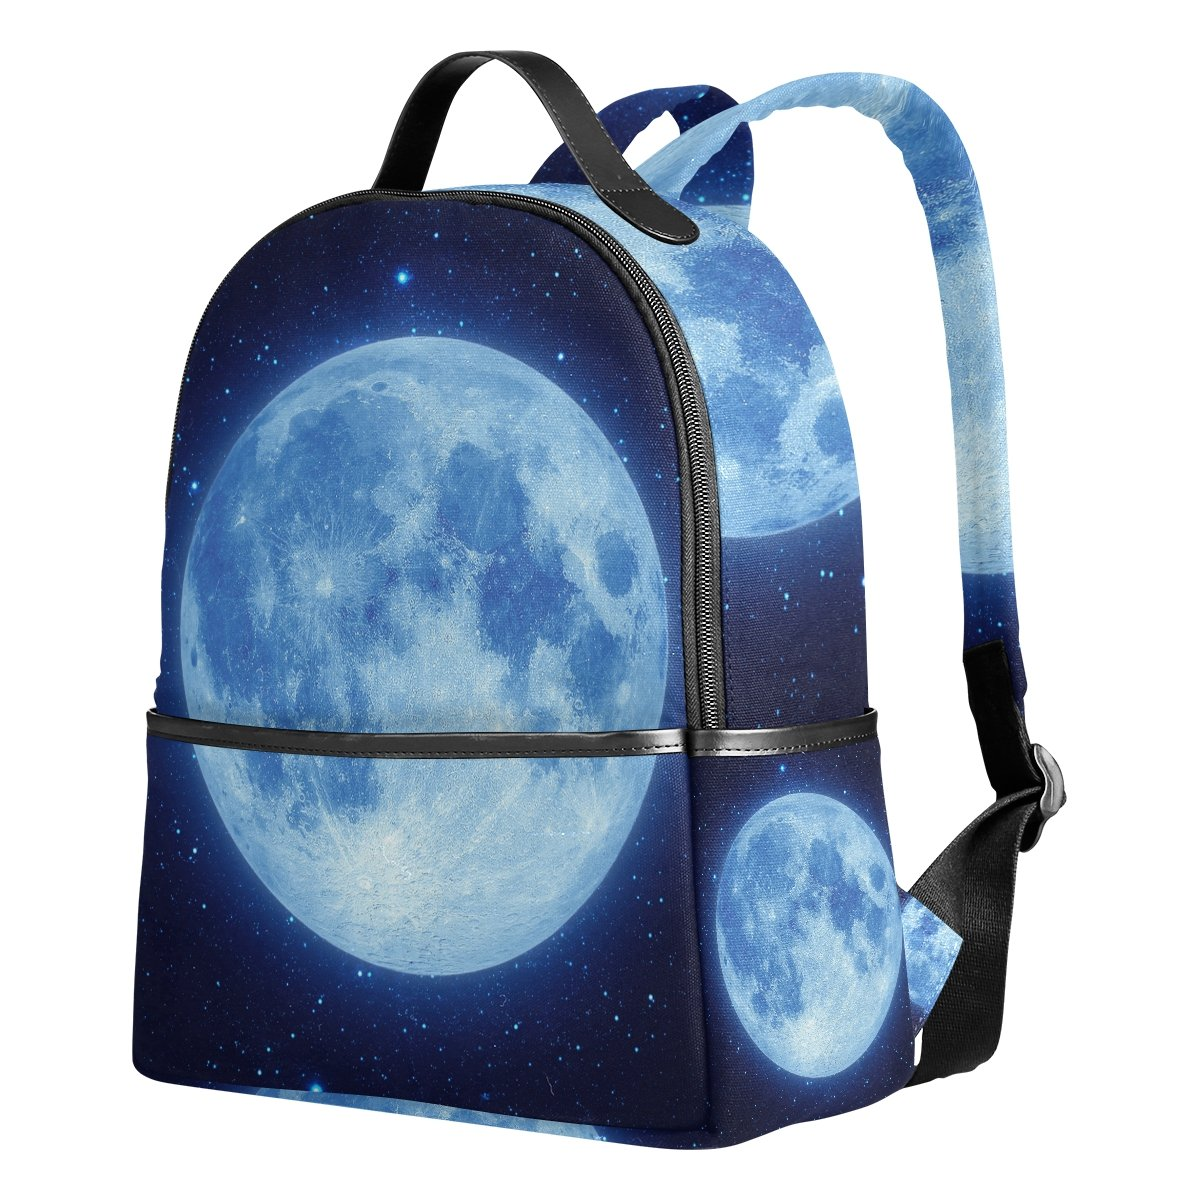 AHOMY Canvas Sports Gym Bag Galaxy Star Space Starry Universe Travel Shoulder Bag